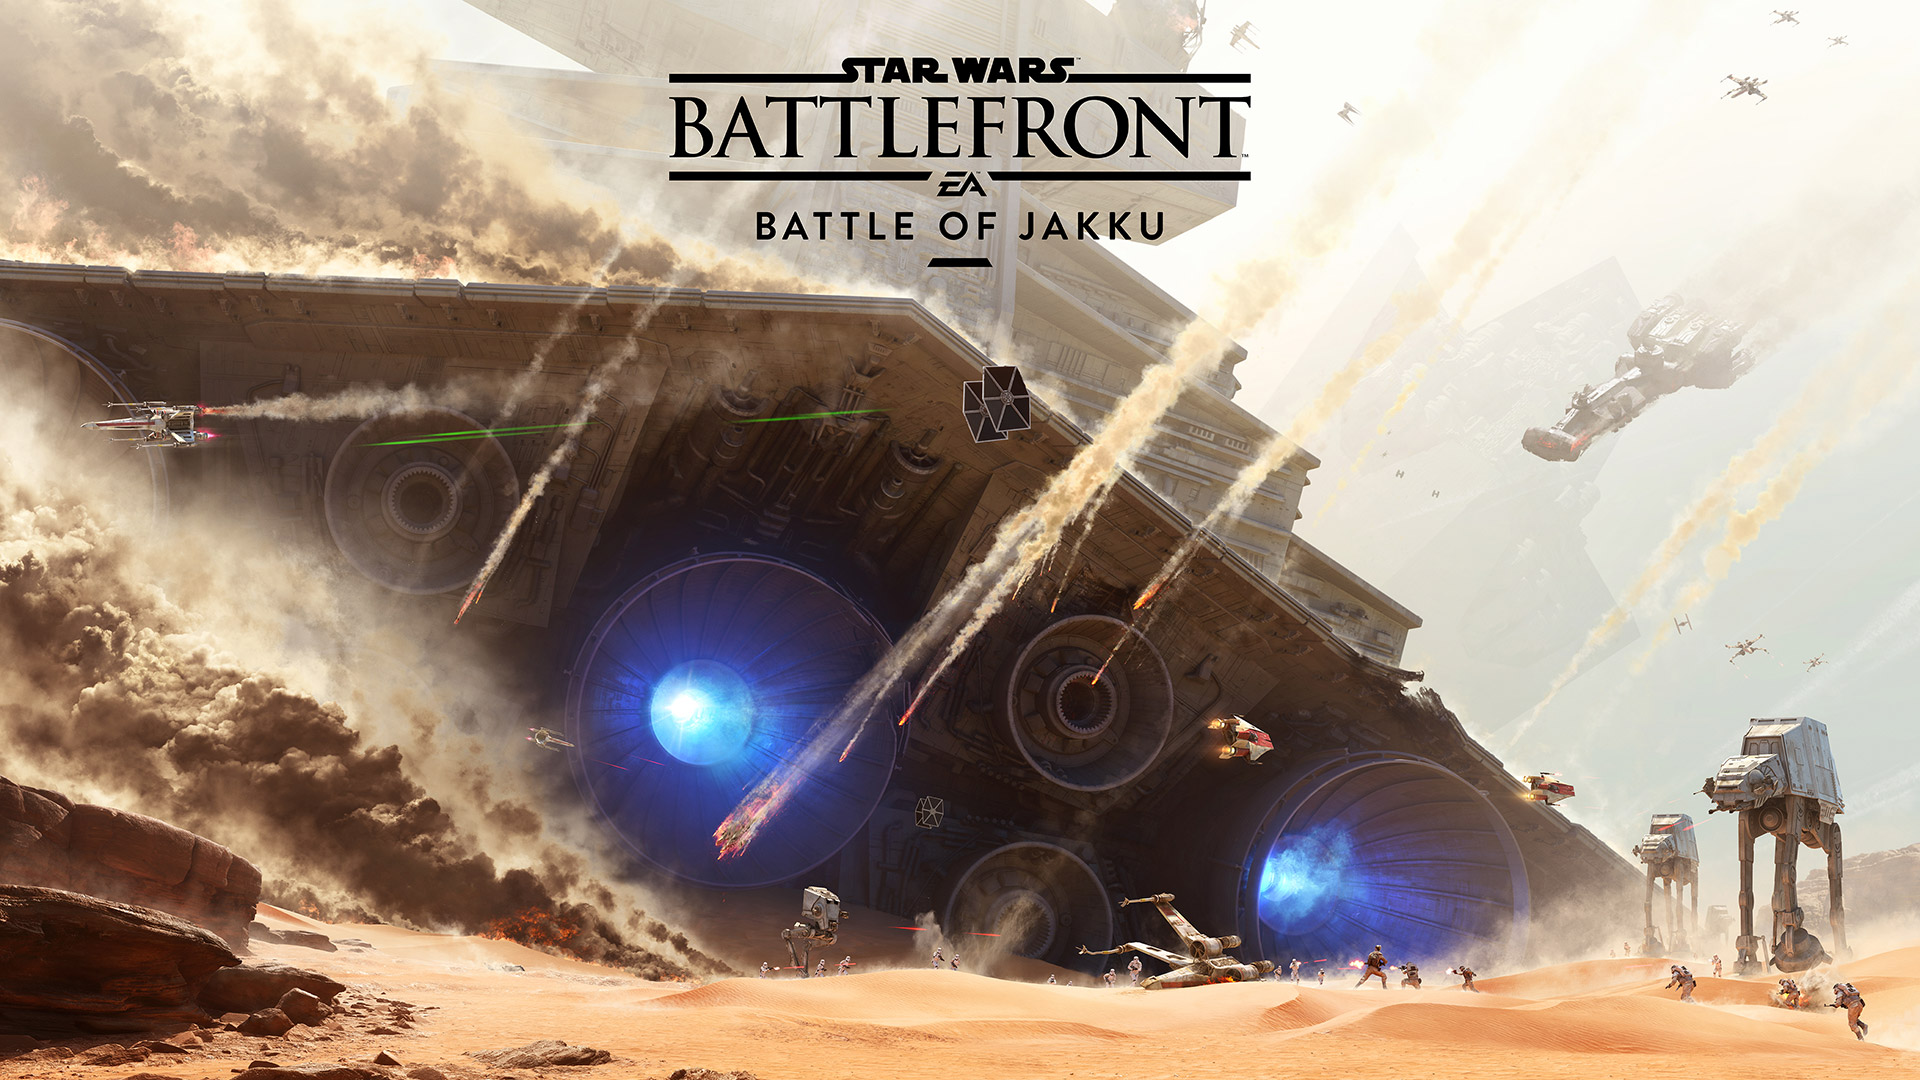 We Talked to DICE About the Development of Battlefront